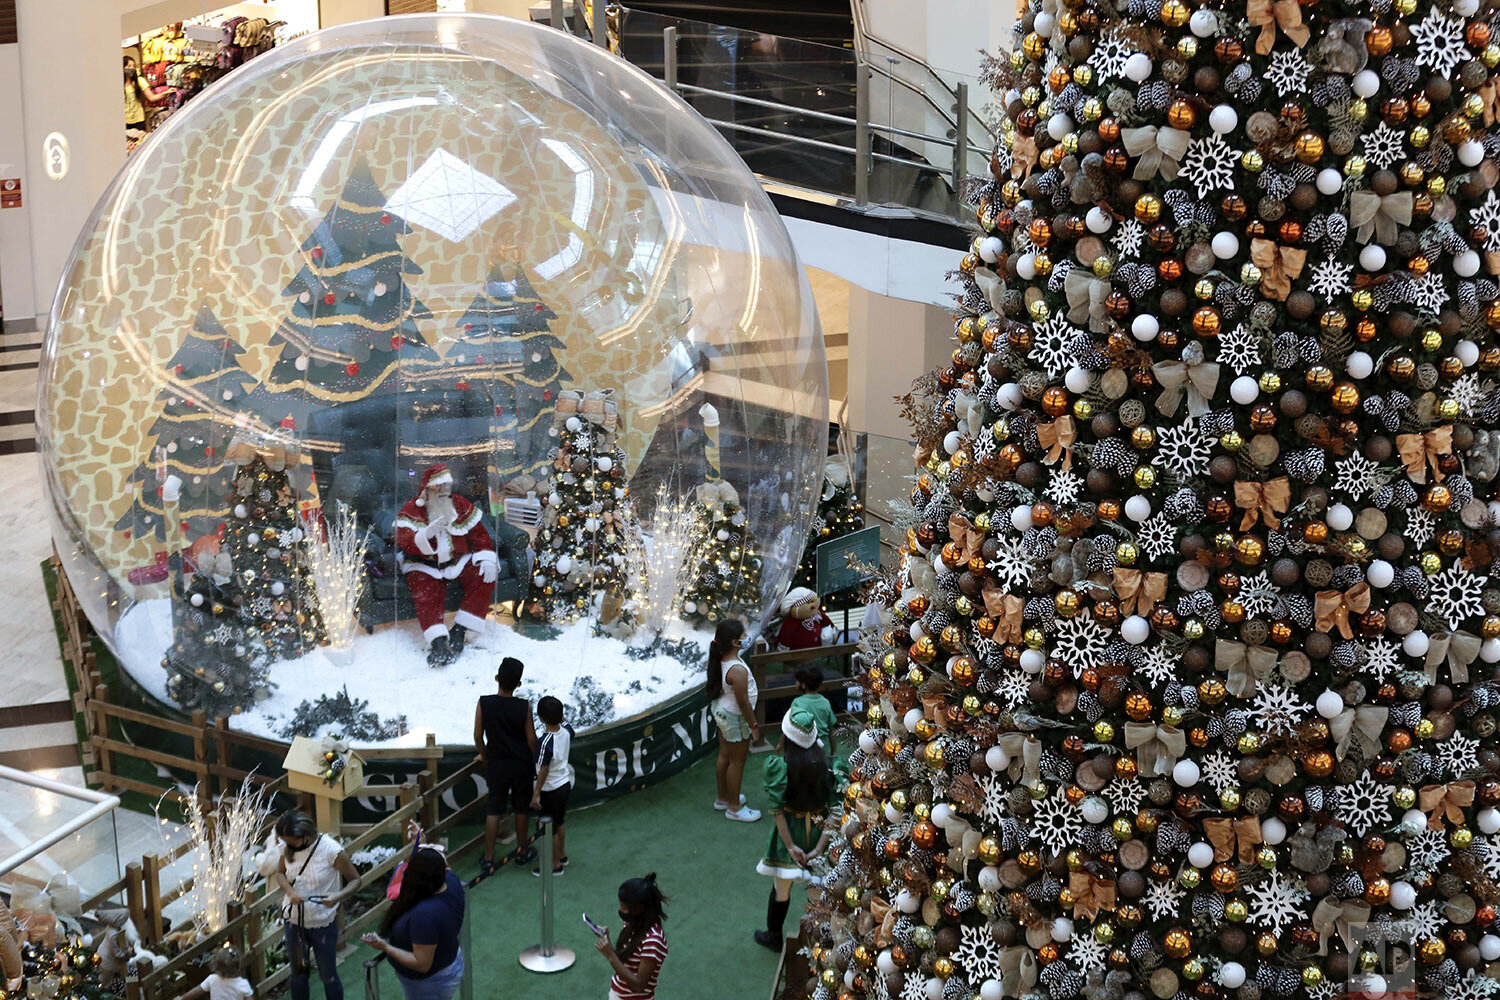 Santa Claus performer Abilio Nunes greets a child from inside a life-size snow globe, as a protective measure amid the spread of COVID-19, at a shopping center in Brasilia, Brazil, Wednesday, Dec. 16, 2020. (AP Photo/Eraldo Peres)